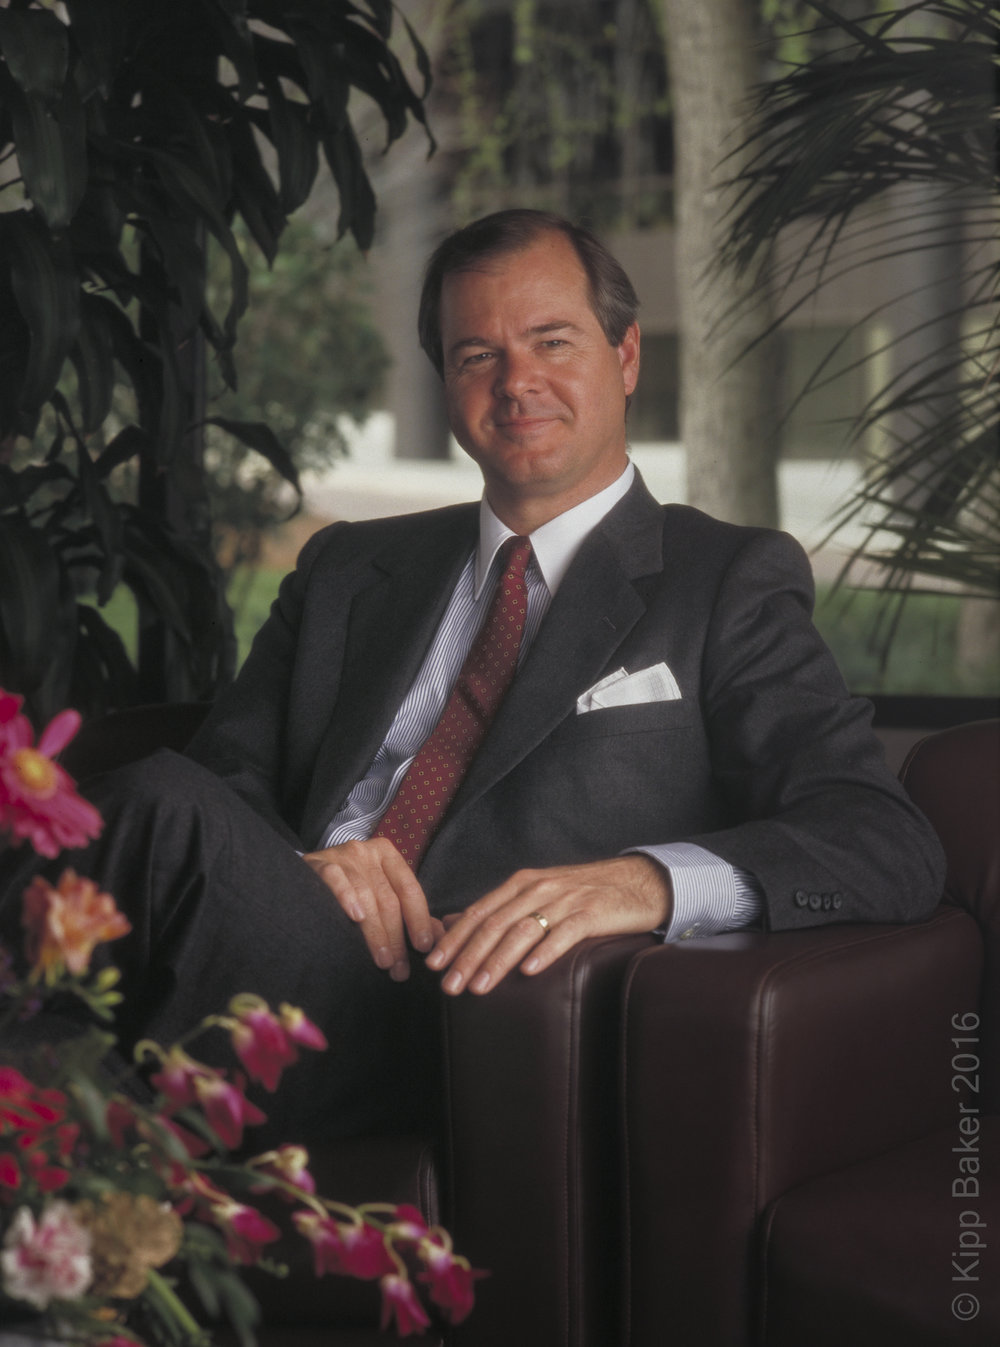 Robert Grout, managing partner  for Troutman, Sanders, Lockerman & Ashmore, one of the original tenants of Ravinia III in Atlanta, Georgia, and designed by architect Kevin Roche. Image used in marketing presentation.